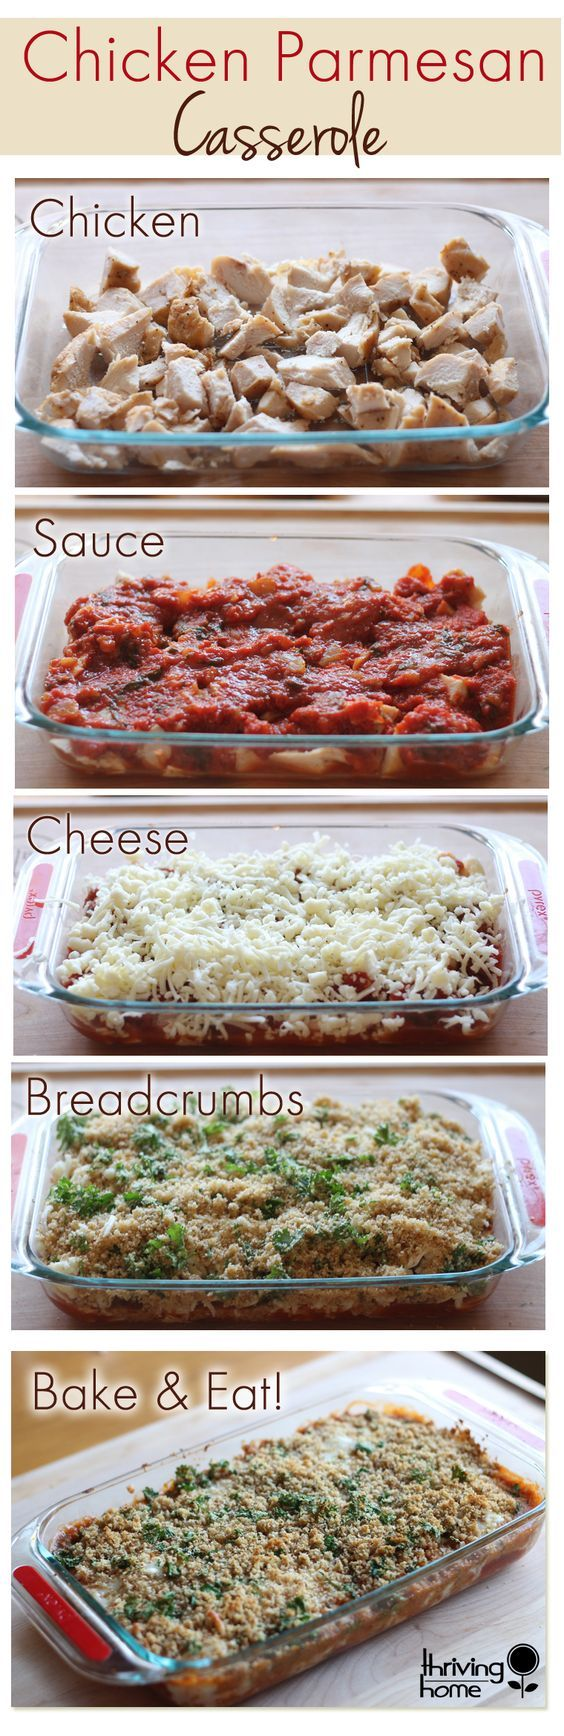 Best 25 freezer bag meals ideas on pinterest dump meals best 25 freezer bag meals ideas on pinterest dump meals chicken freezer meals and slow cooker freezer meals forumfinder Gallery